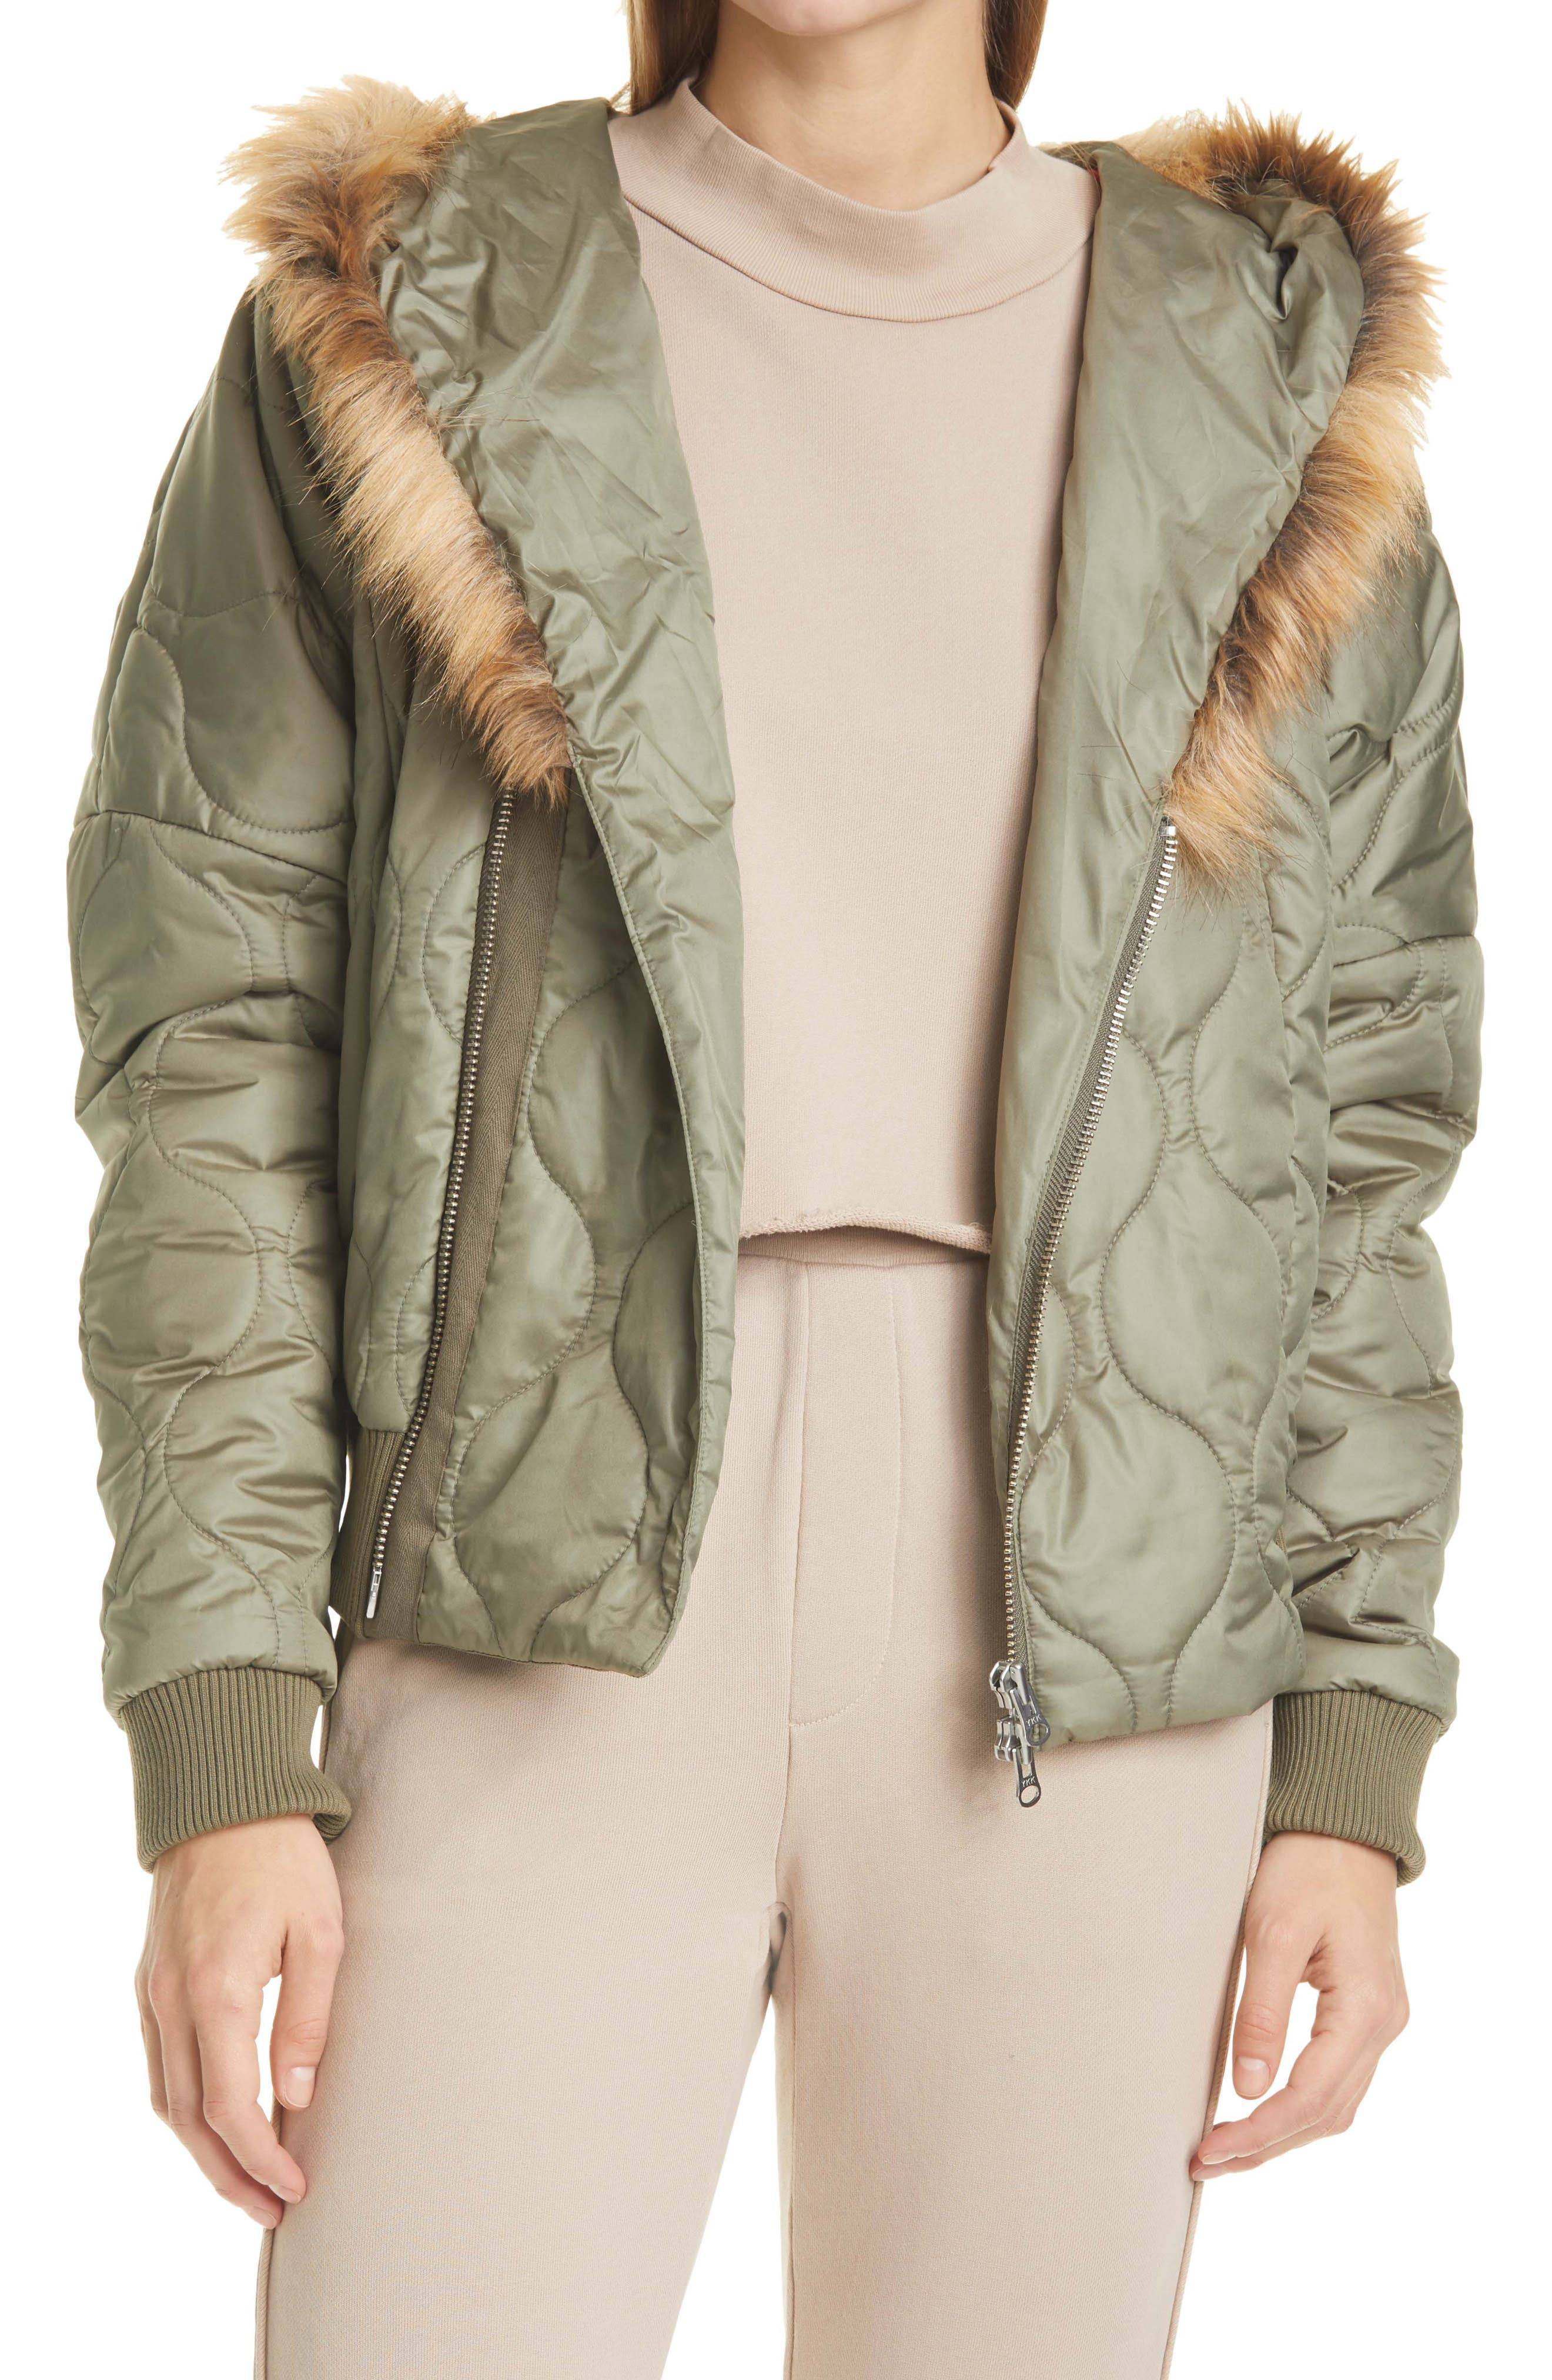 NSF Clothing Women's Nsf Clothing Goya Hooded Puffer Jacket With Faux Fur Trim, Size Petite - Green